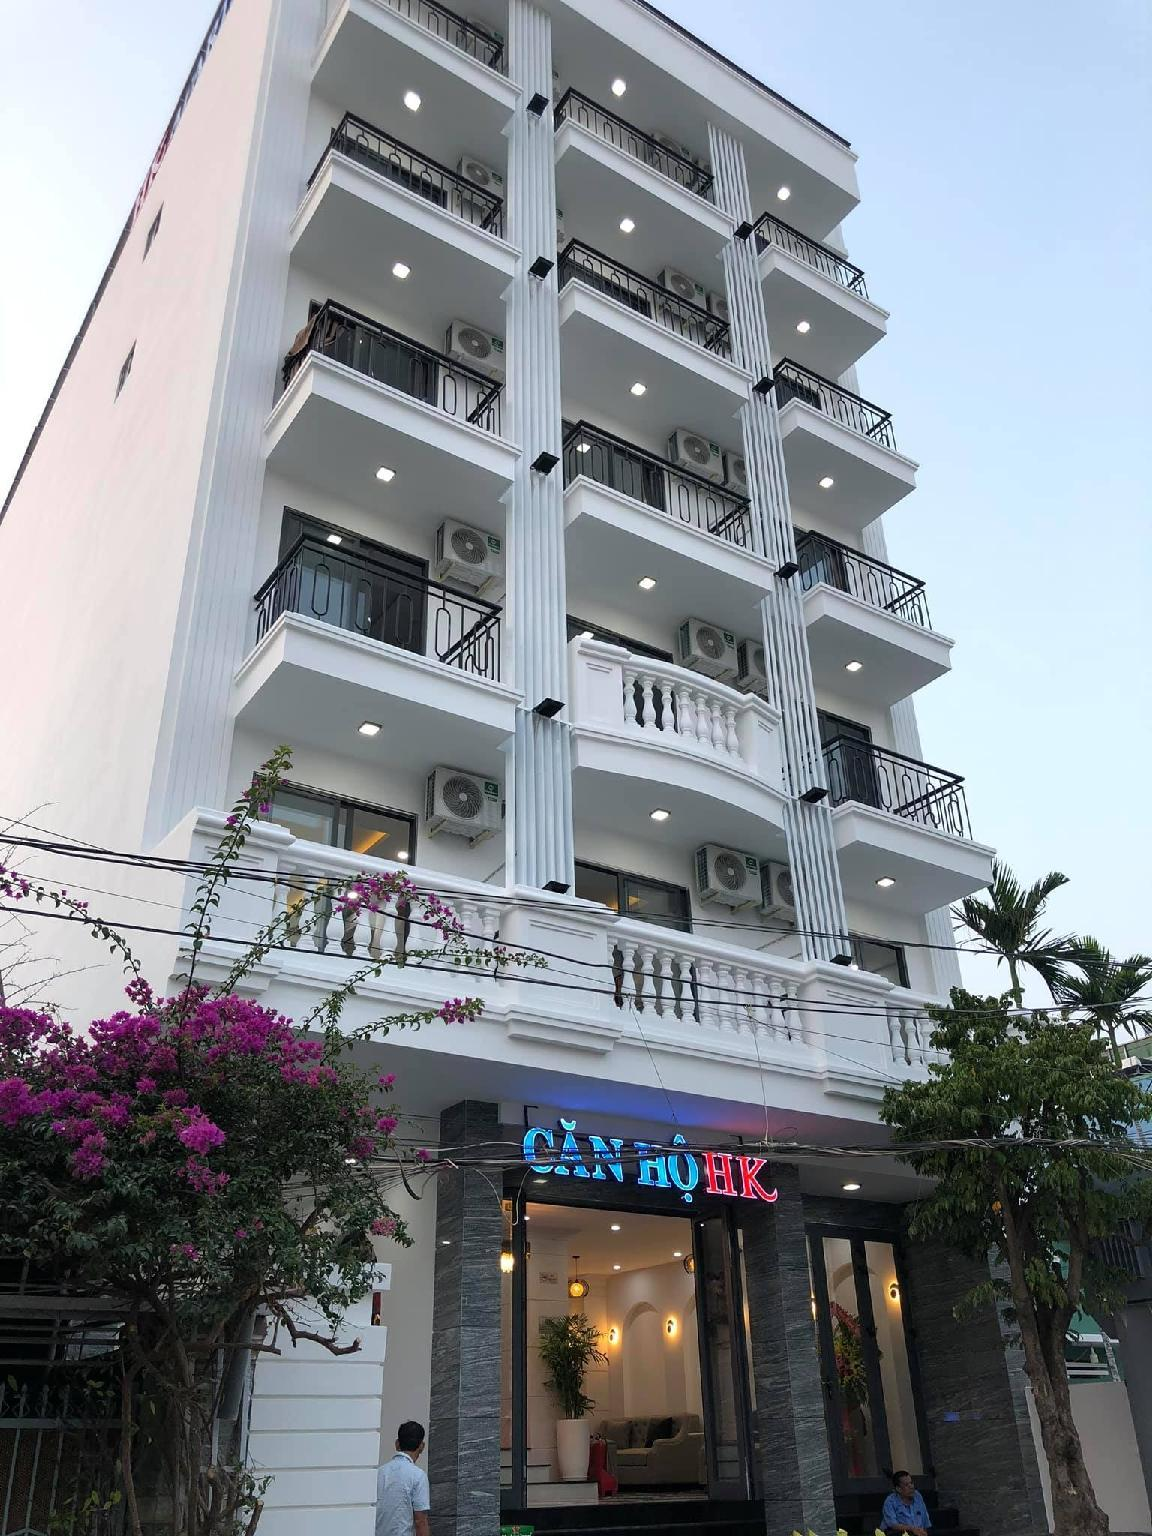 HK Apartment  Just 3 Mins Away From The Beach